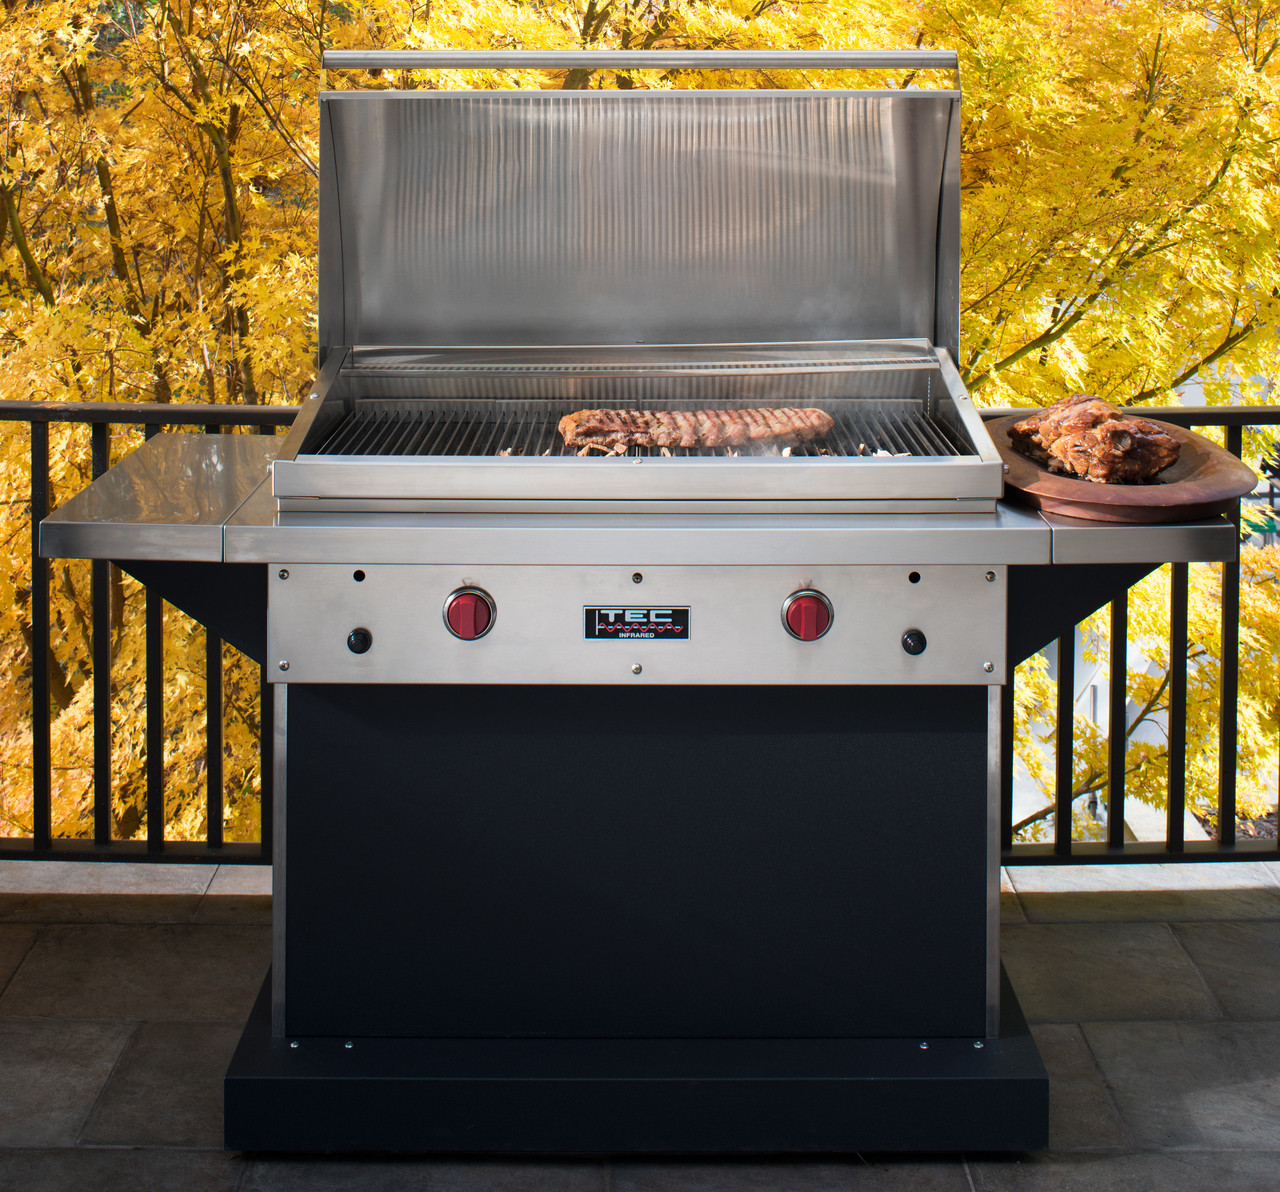 tec patio fr infrared gas grill with side shelves 44